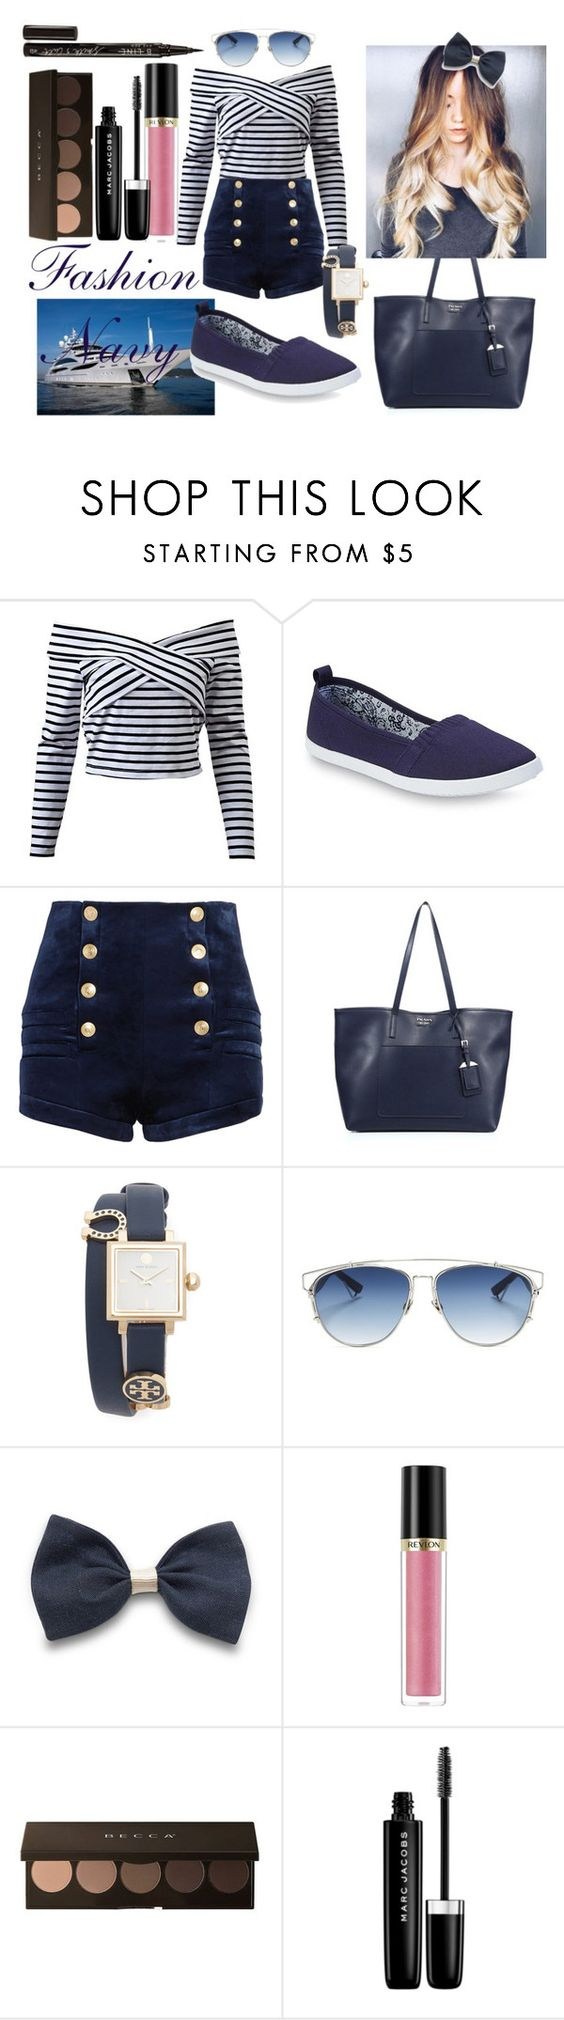 """Navy girl"" by jenssitmode1 on Polyvore featuring Pierre Balmain, Prada, Tory Burch, Christian Dior, Revlon, Marc Jacobs and Smith & Cult"